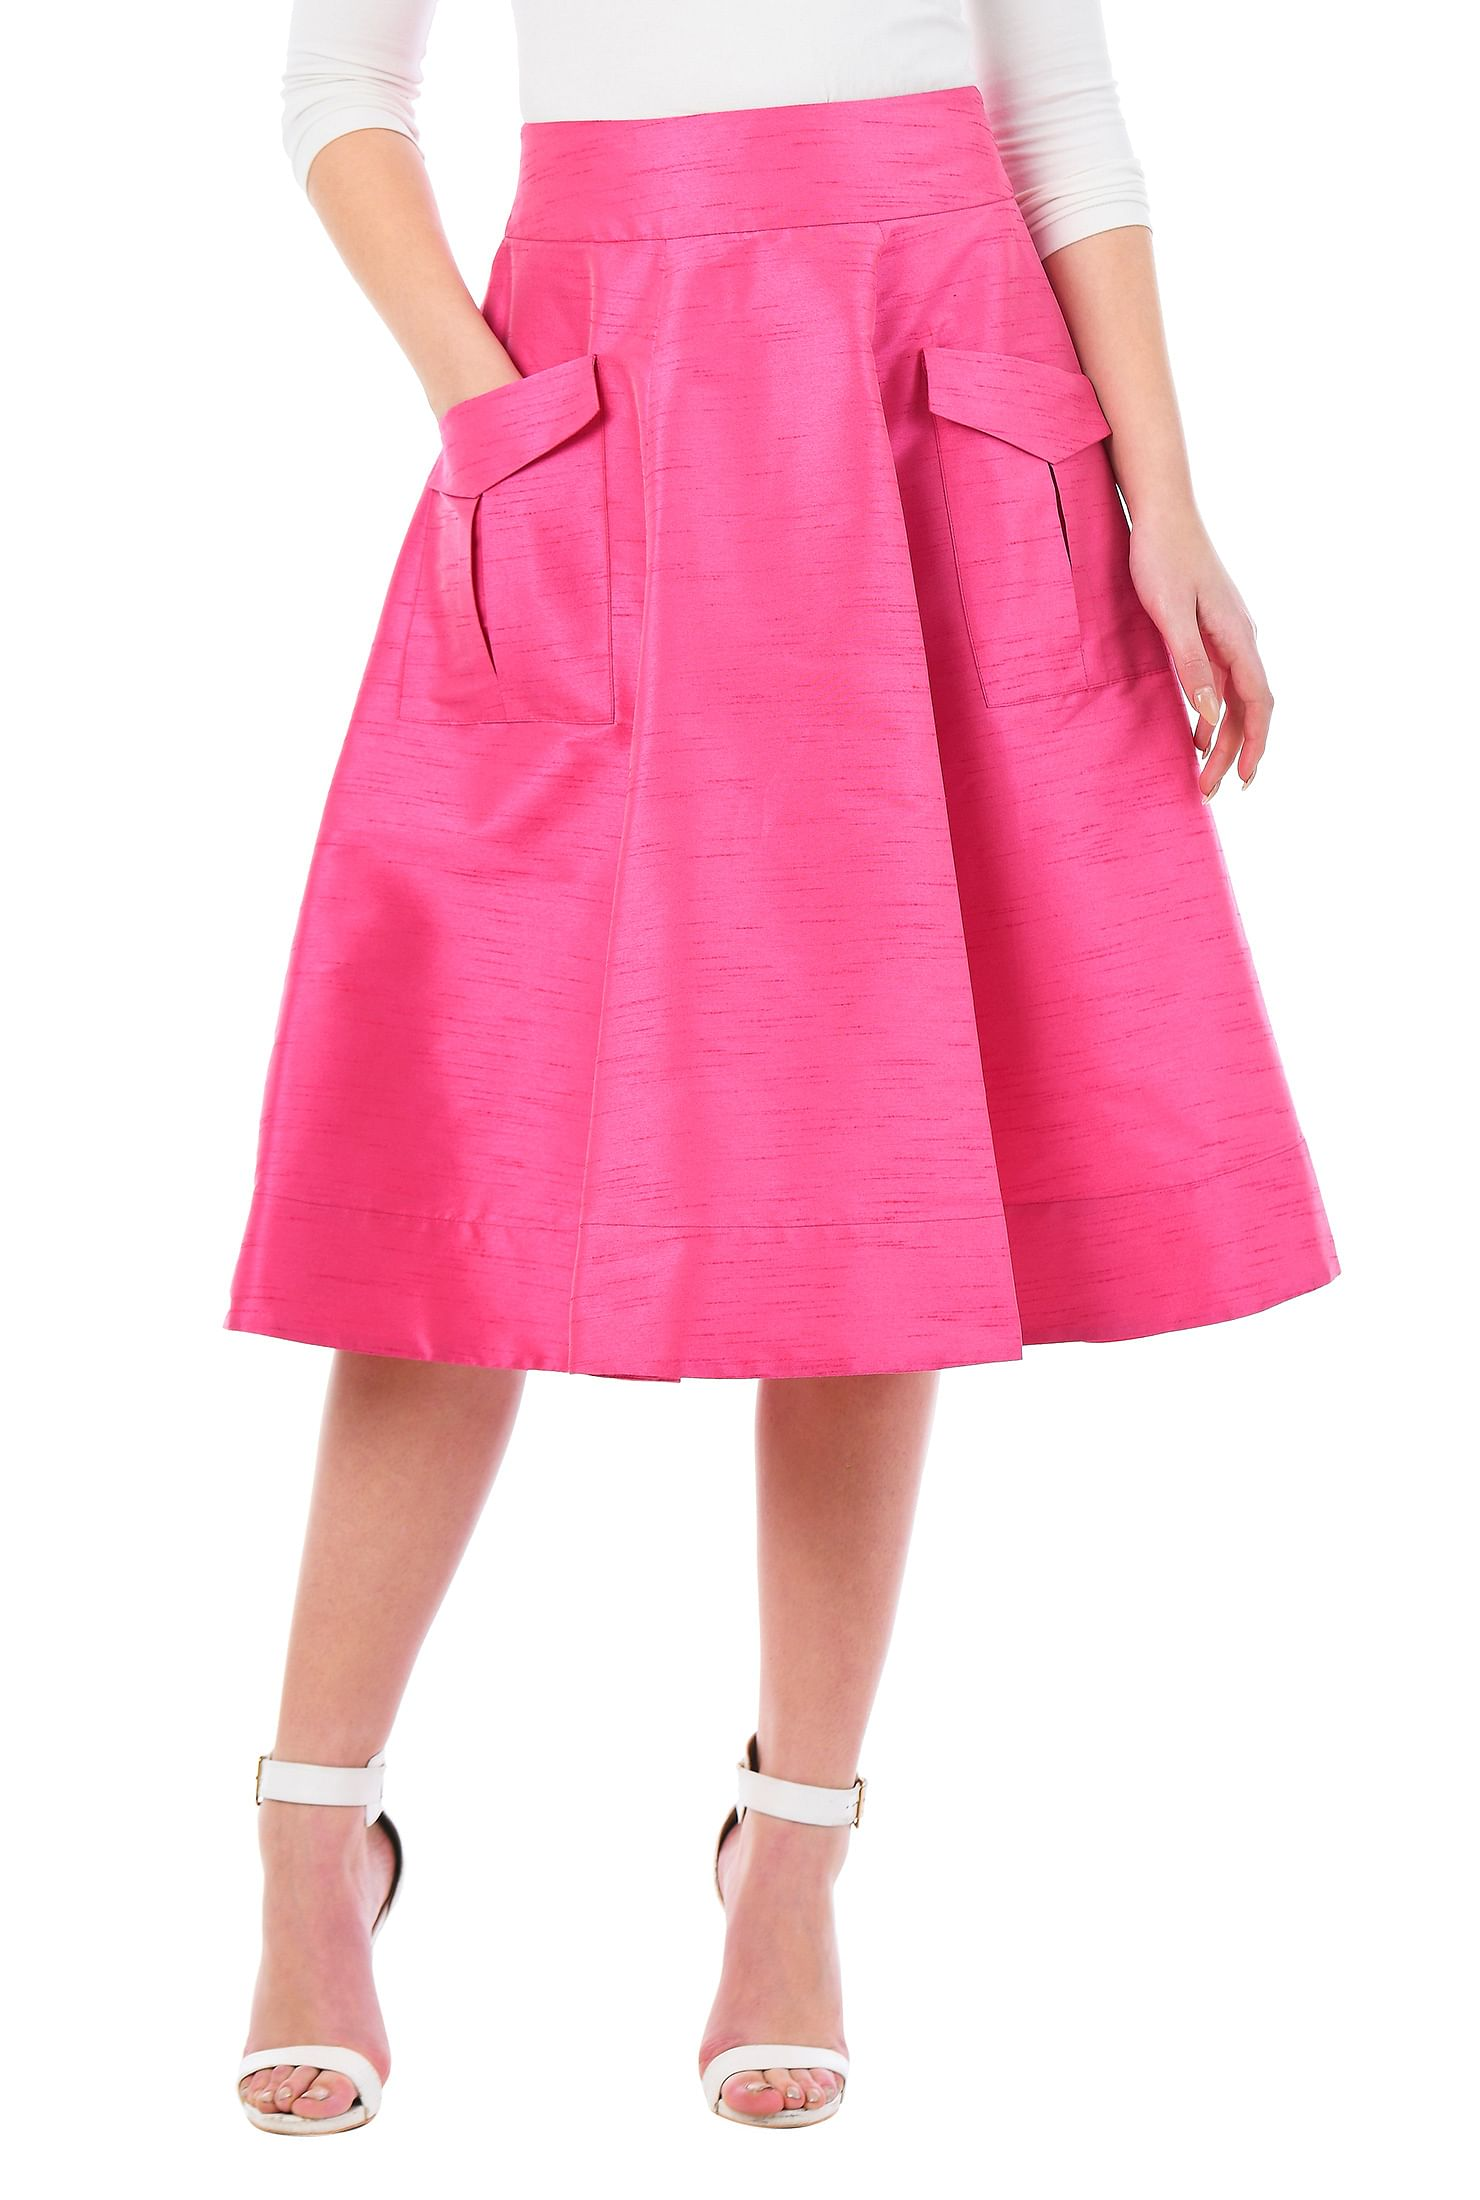 9b613c57d5 Home · Dresses; Cargo pocket dupioni skirt. , banded waist skirts, below  knee length skirts, Dry clean skirts, Feminine Skirts